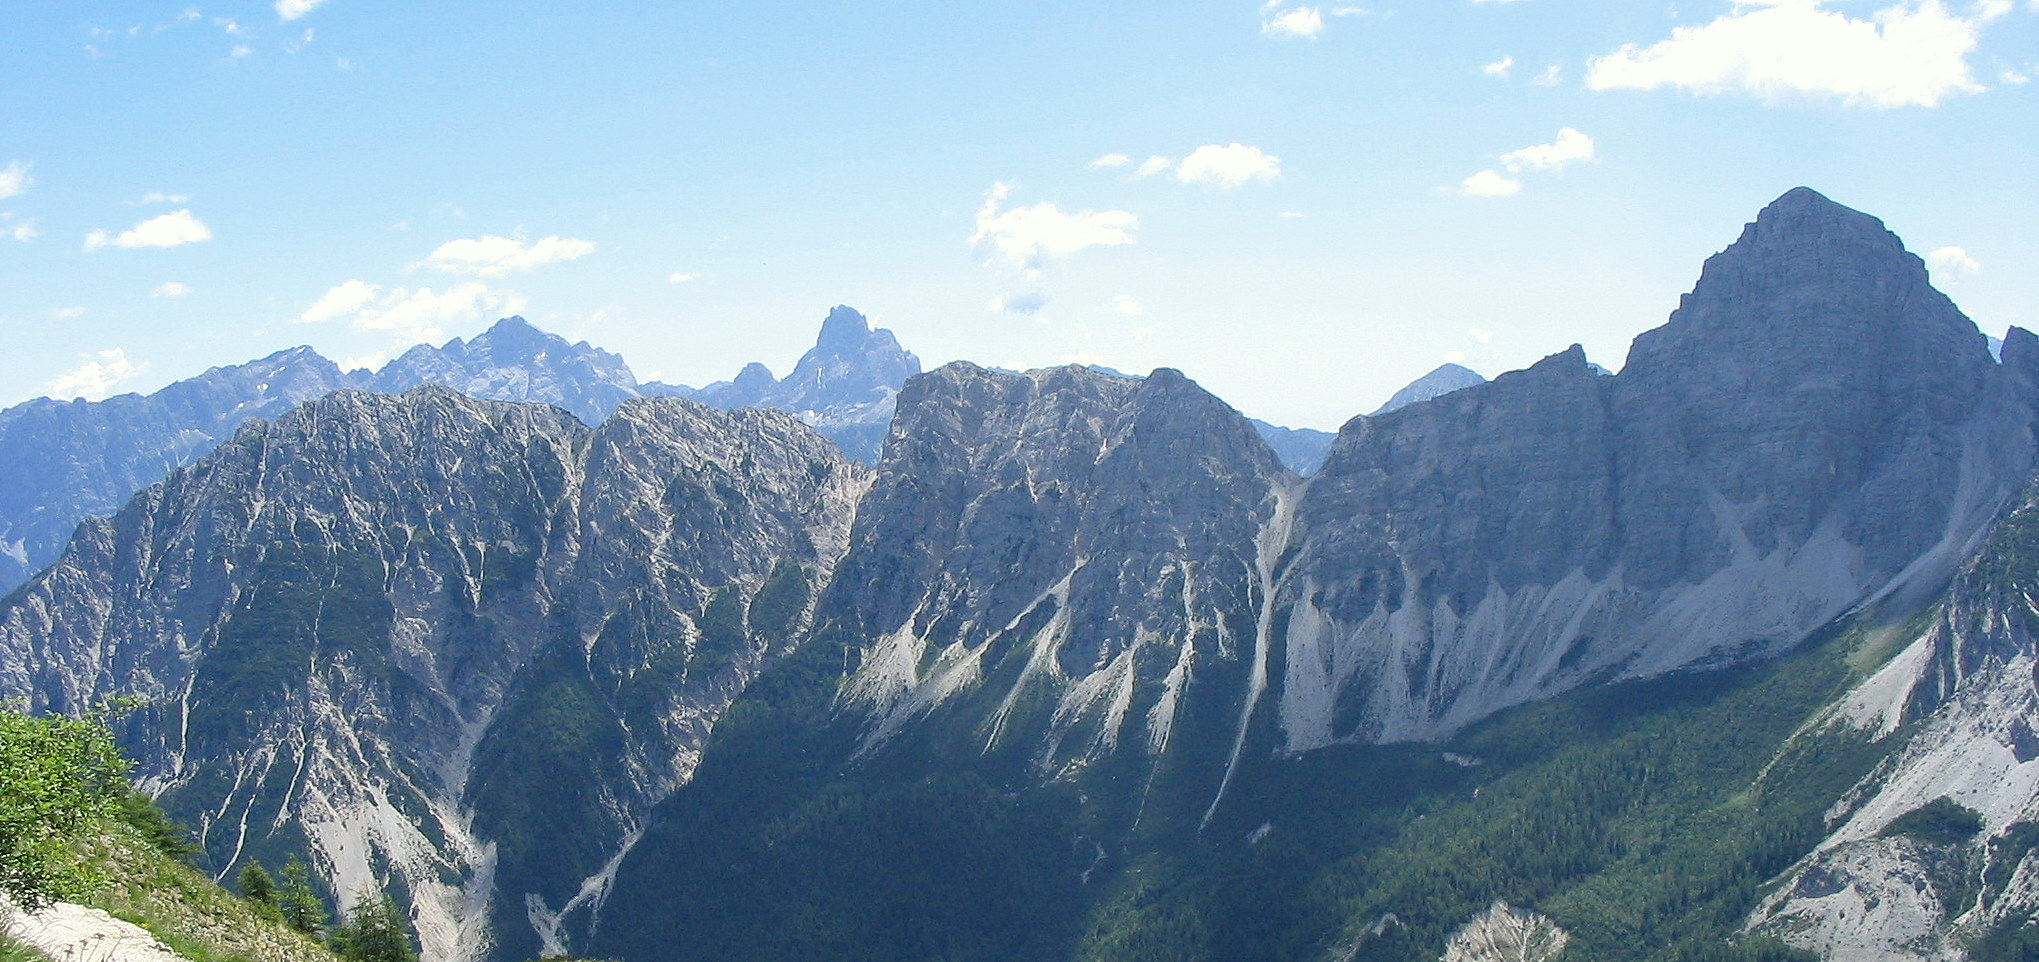 dolomite dating Locally run, dolomite mountains provides expert guides for all of dolomites  hiking, biking, via ferrata and climbing needs call dolomite mountains today  at.